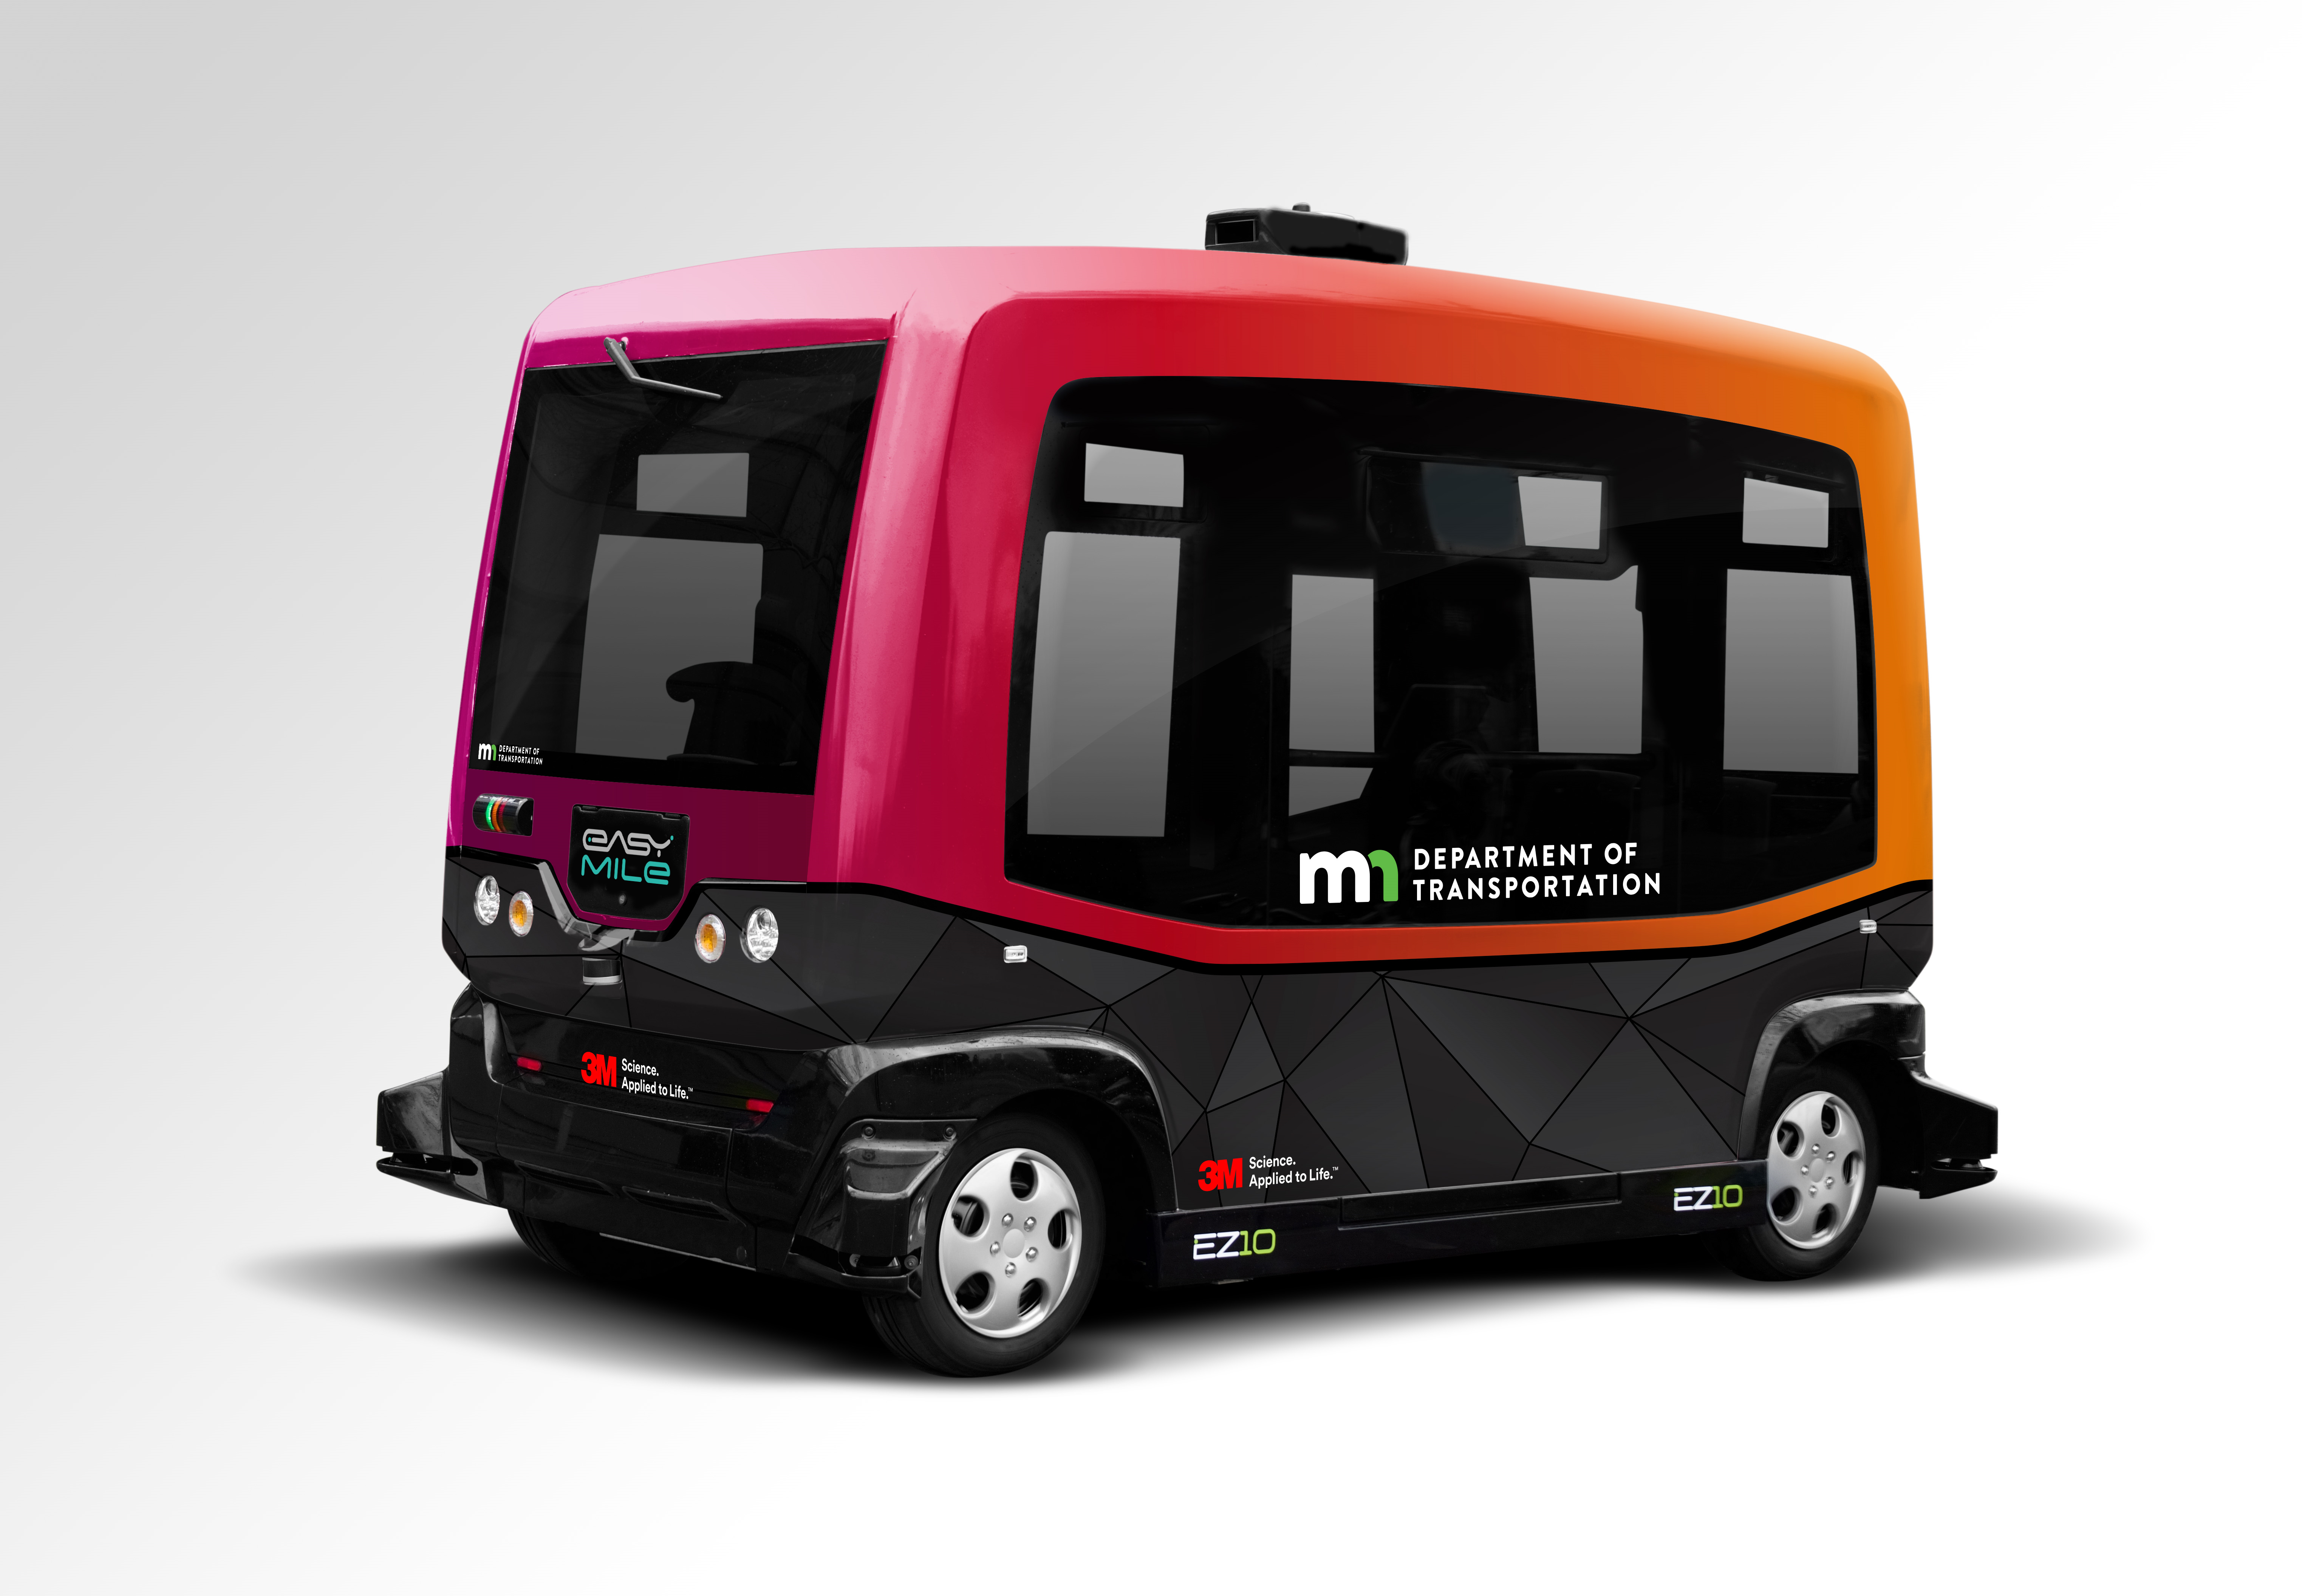 image of the MnDOT automated shuttle bus